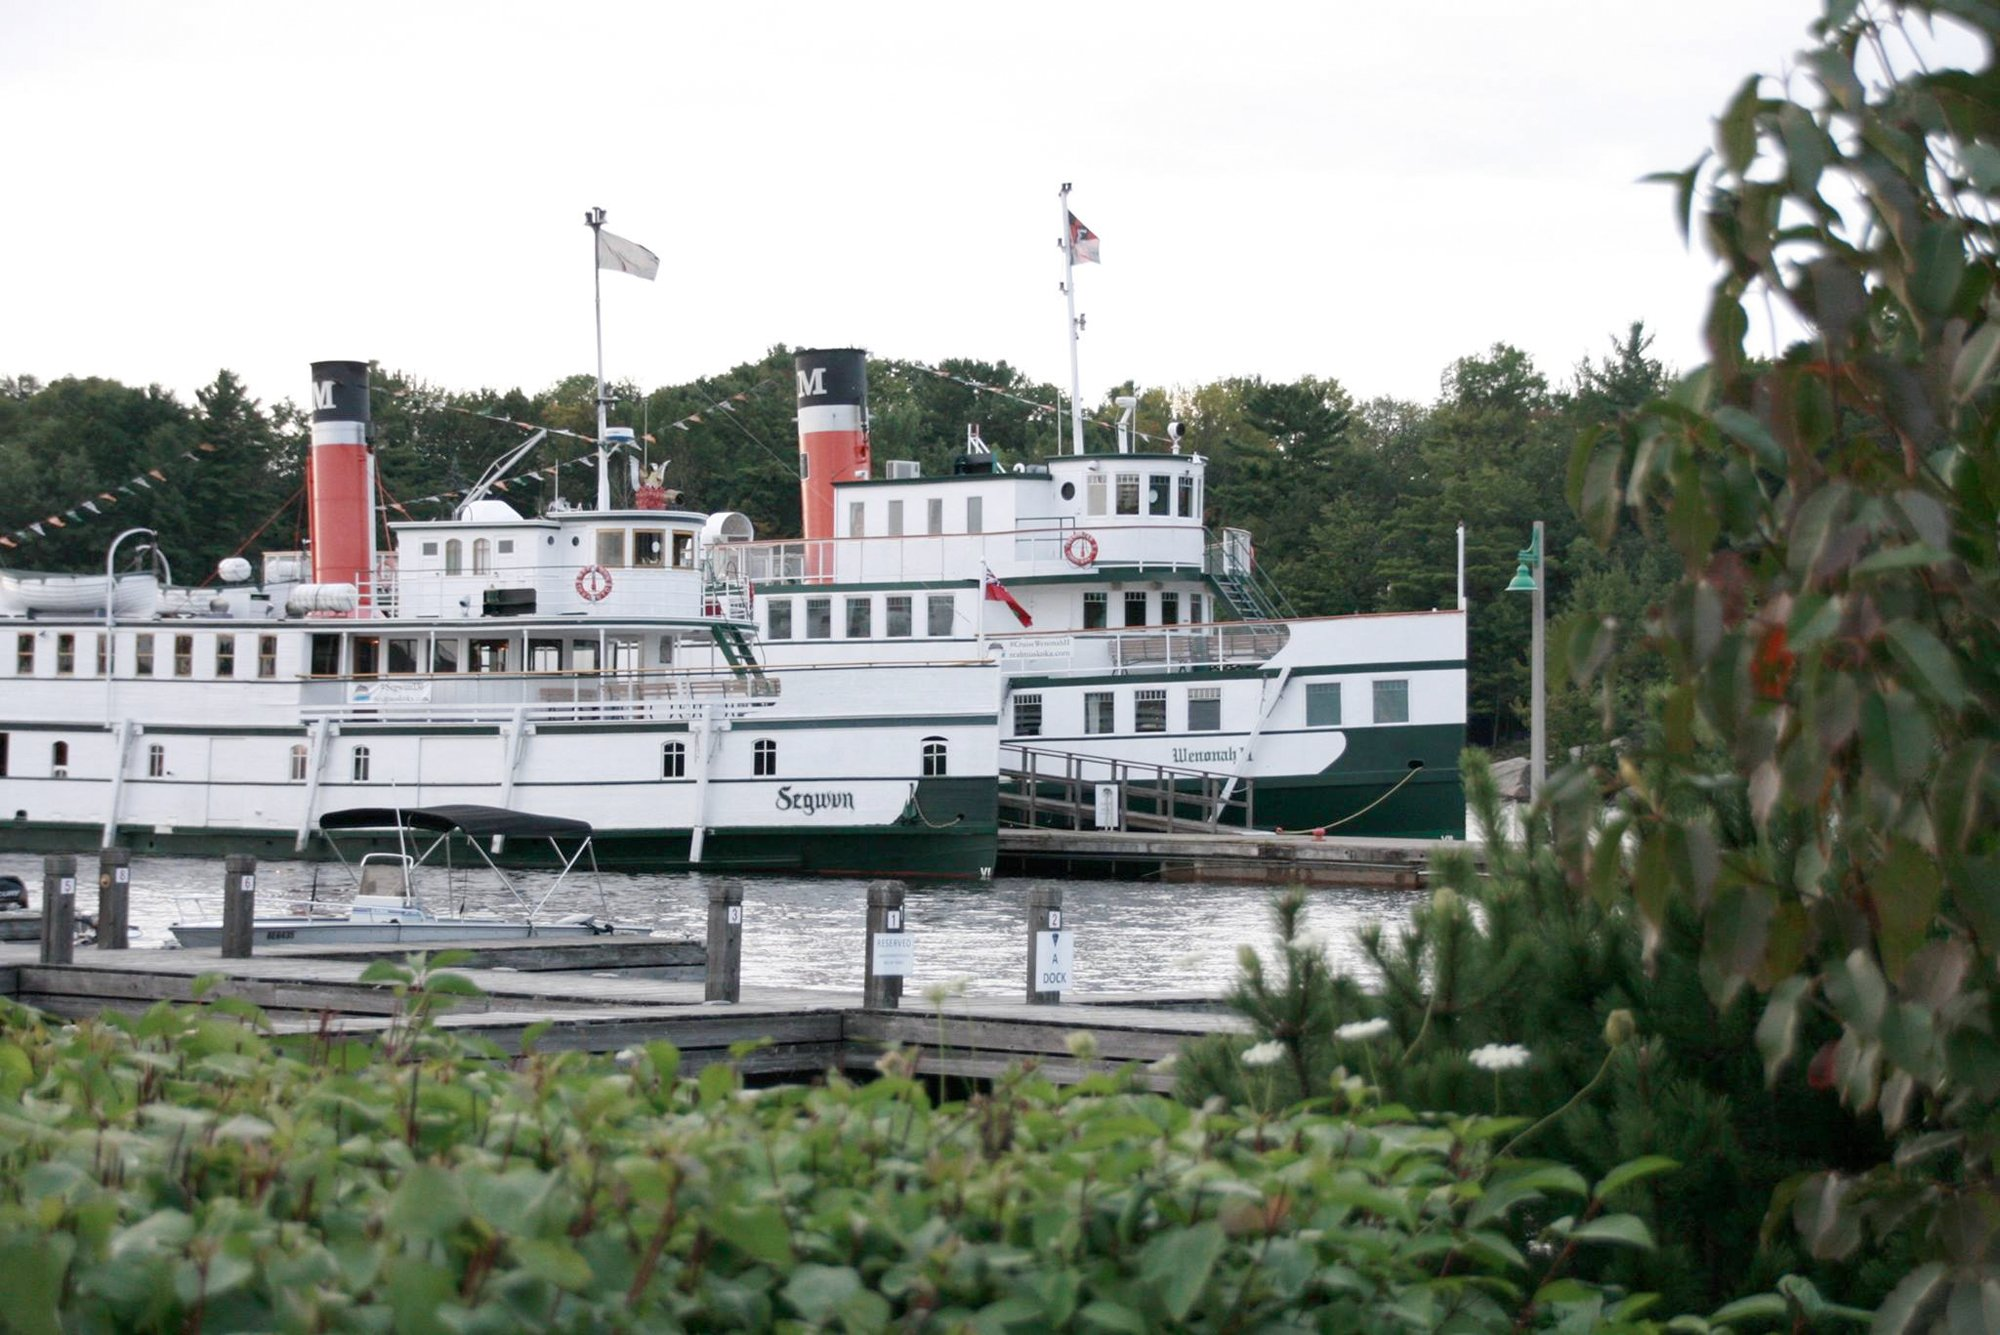 Ours to Discover Muskoka